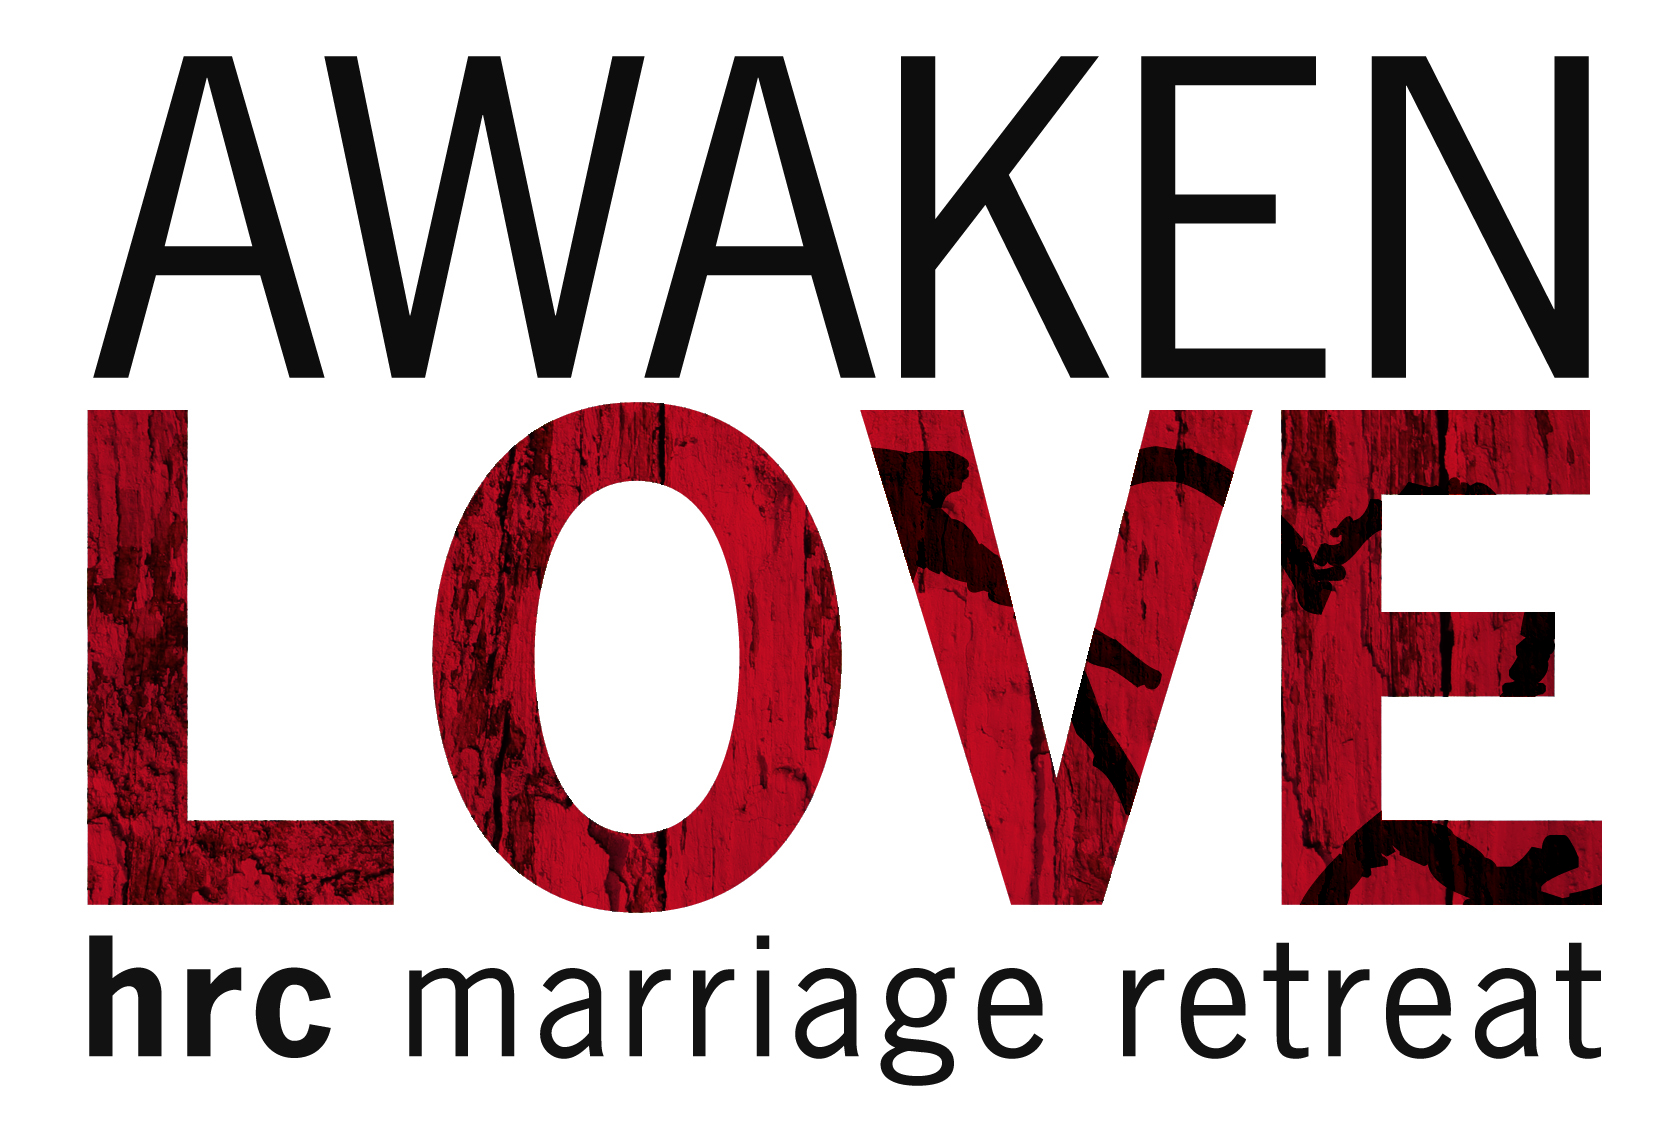 "Are you ready to Awaken Love? Hampton  Roads  Church  invites  you  to  join  us  this  February,  as  we  focus  on  ""Awakening Love"" in our marriages. We will learn how to better ""celebrate, sing, and make great music together"" Song of Songs 1:4, in order to see our marriages bring glory to God.  We are excited to welcome Ruben and Barbara Marbury, who serve as the Evangelist and Women's Ministry Leader for the Montgomery County Church in Maryland, as our guest speakers for the  weekend. Ruben  and  Barbara  both  came  to  know  Christ during their campus years  and  later helped plant and lead churches throughout the eastern United States. The Marbury's have been married for 23 years and have three wonderful daughters. We are eager to learn how we can better ""Awaken Love!""  Saturday, February 15th from 1-5pm Sunday, February 16th from 10am-12pm   The cost is $20/couple.  To register, click on the following link:       http://www.easytithe.com/f/?k=CZCL9514J0AMJ1UR    Take advantage of nearby hotels and restaurants to make this a special weekend getaway.    Location: Hampton Roads Church 1132 Pickett Rd., Norfolk"